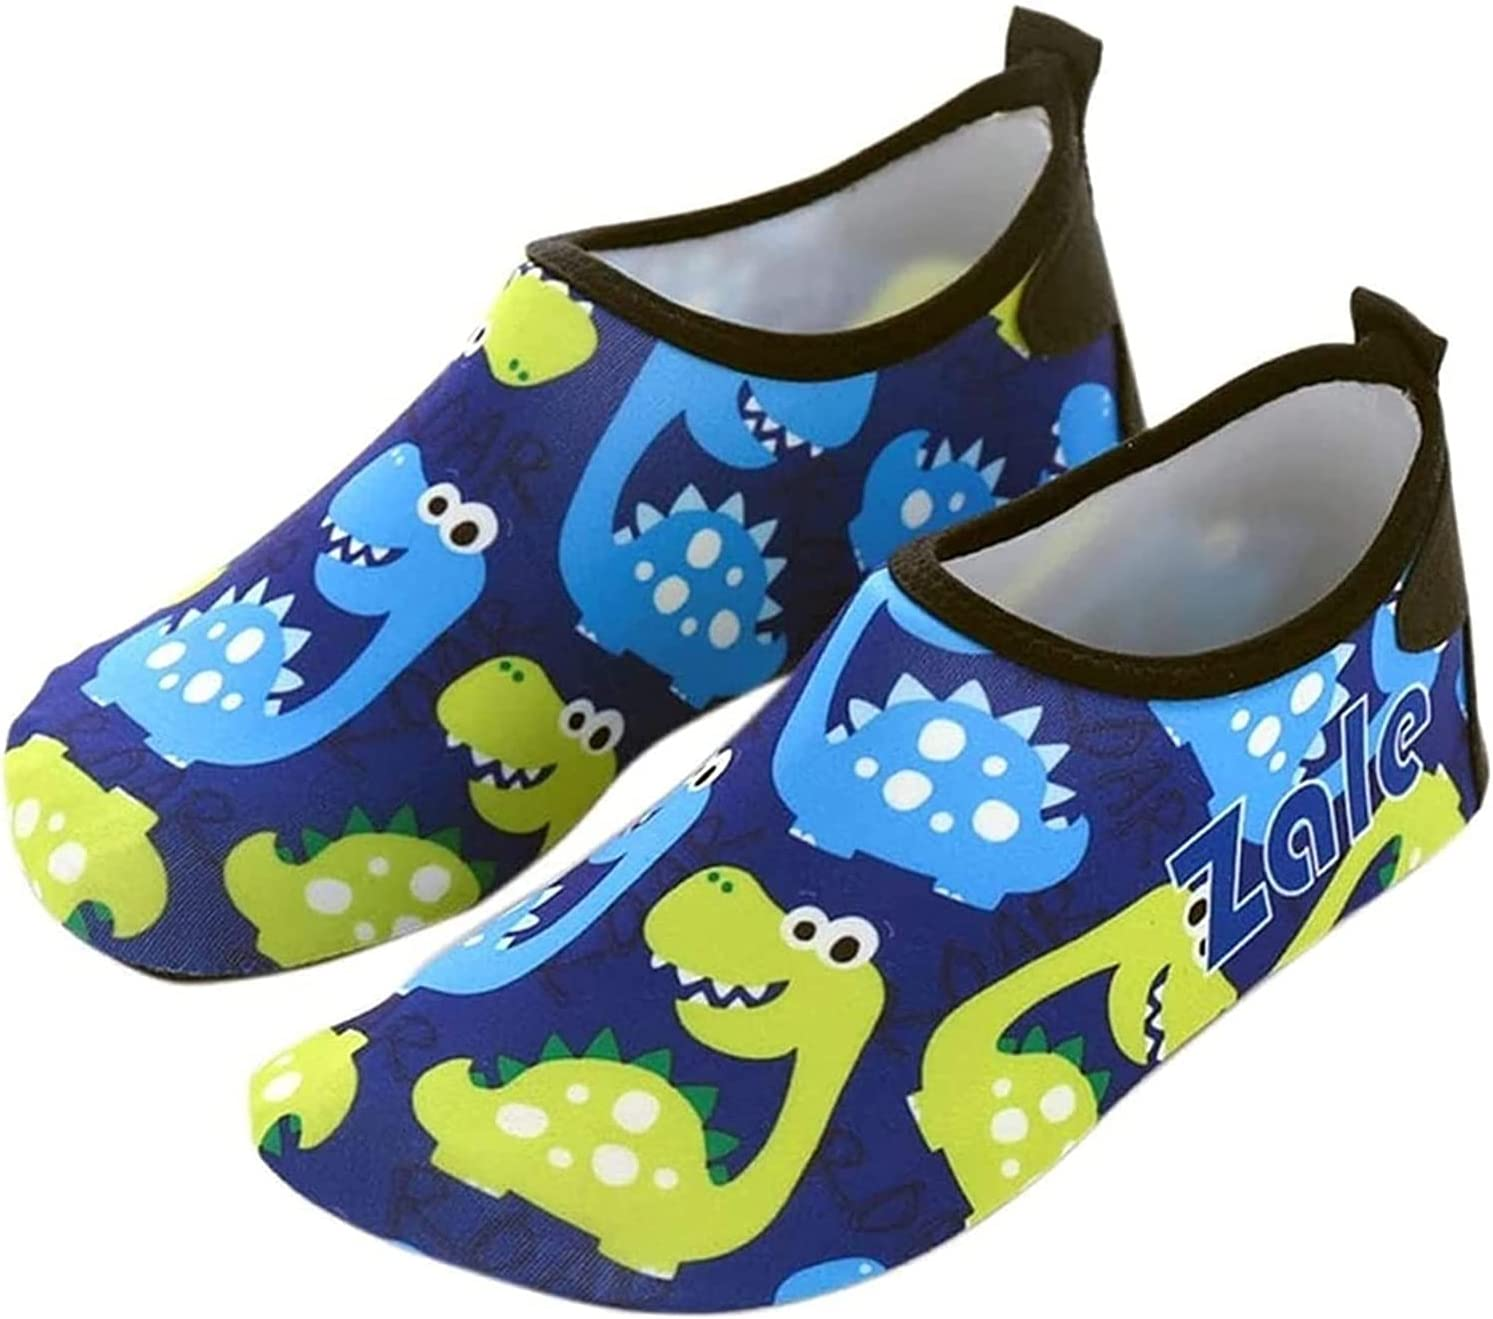 LSZ 5 popular Swimming Shoes Summer Beach Max 72% OFF Kids for Outdoor Sho